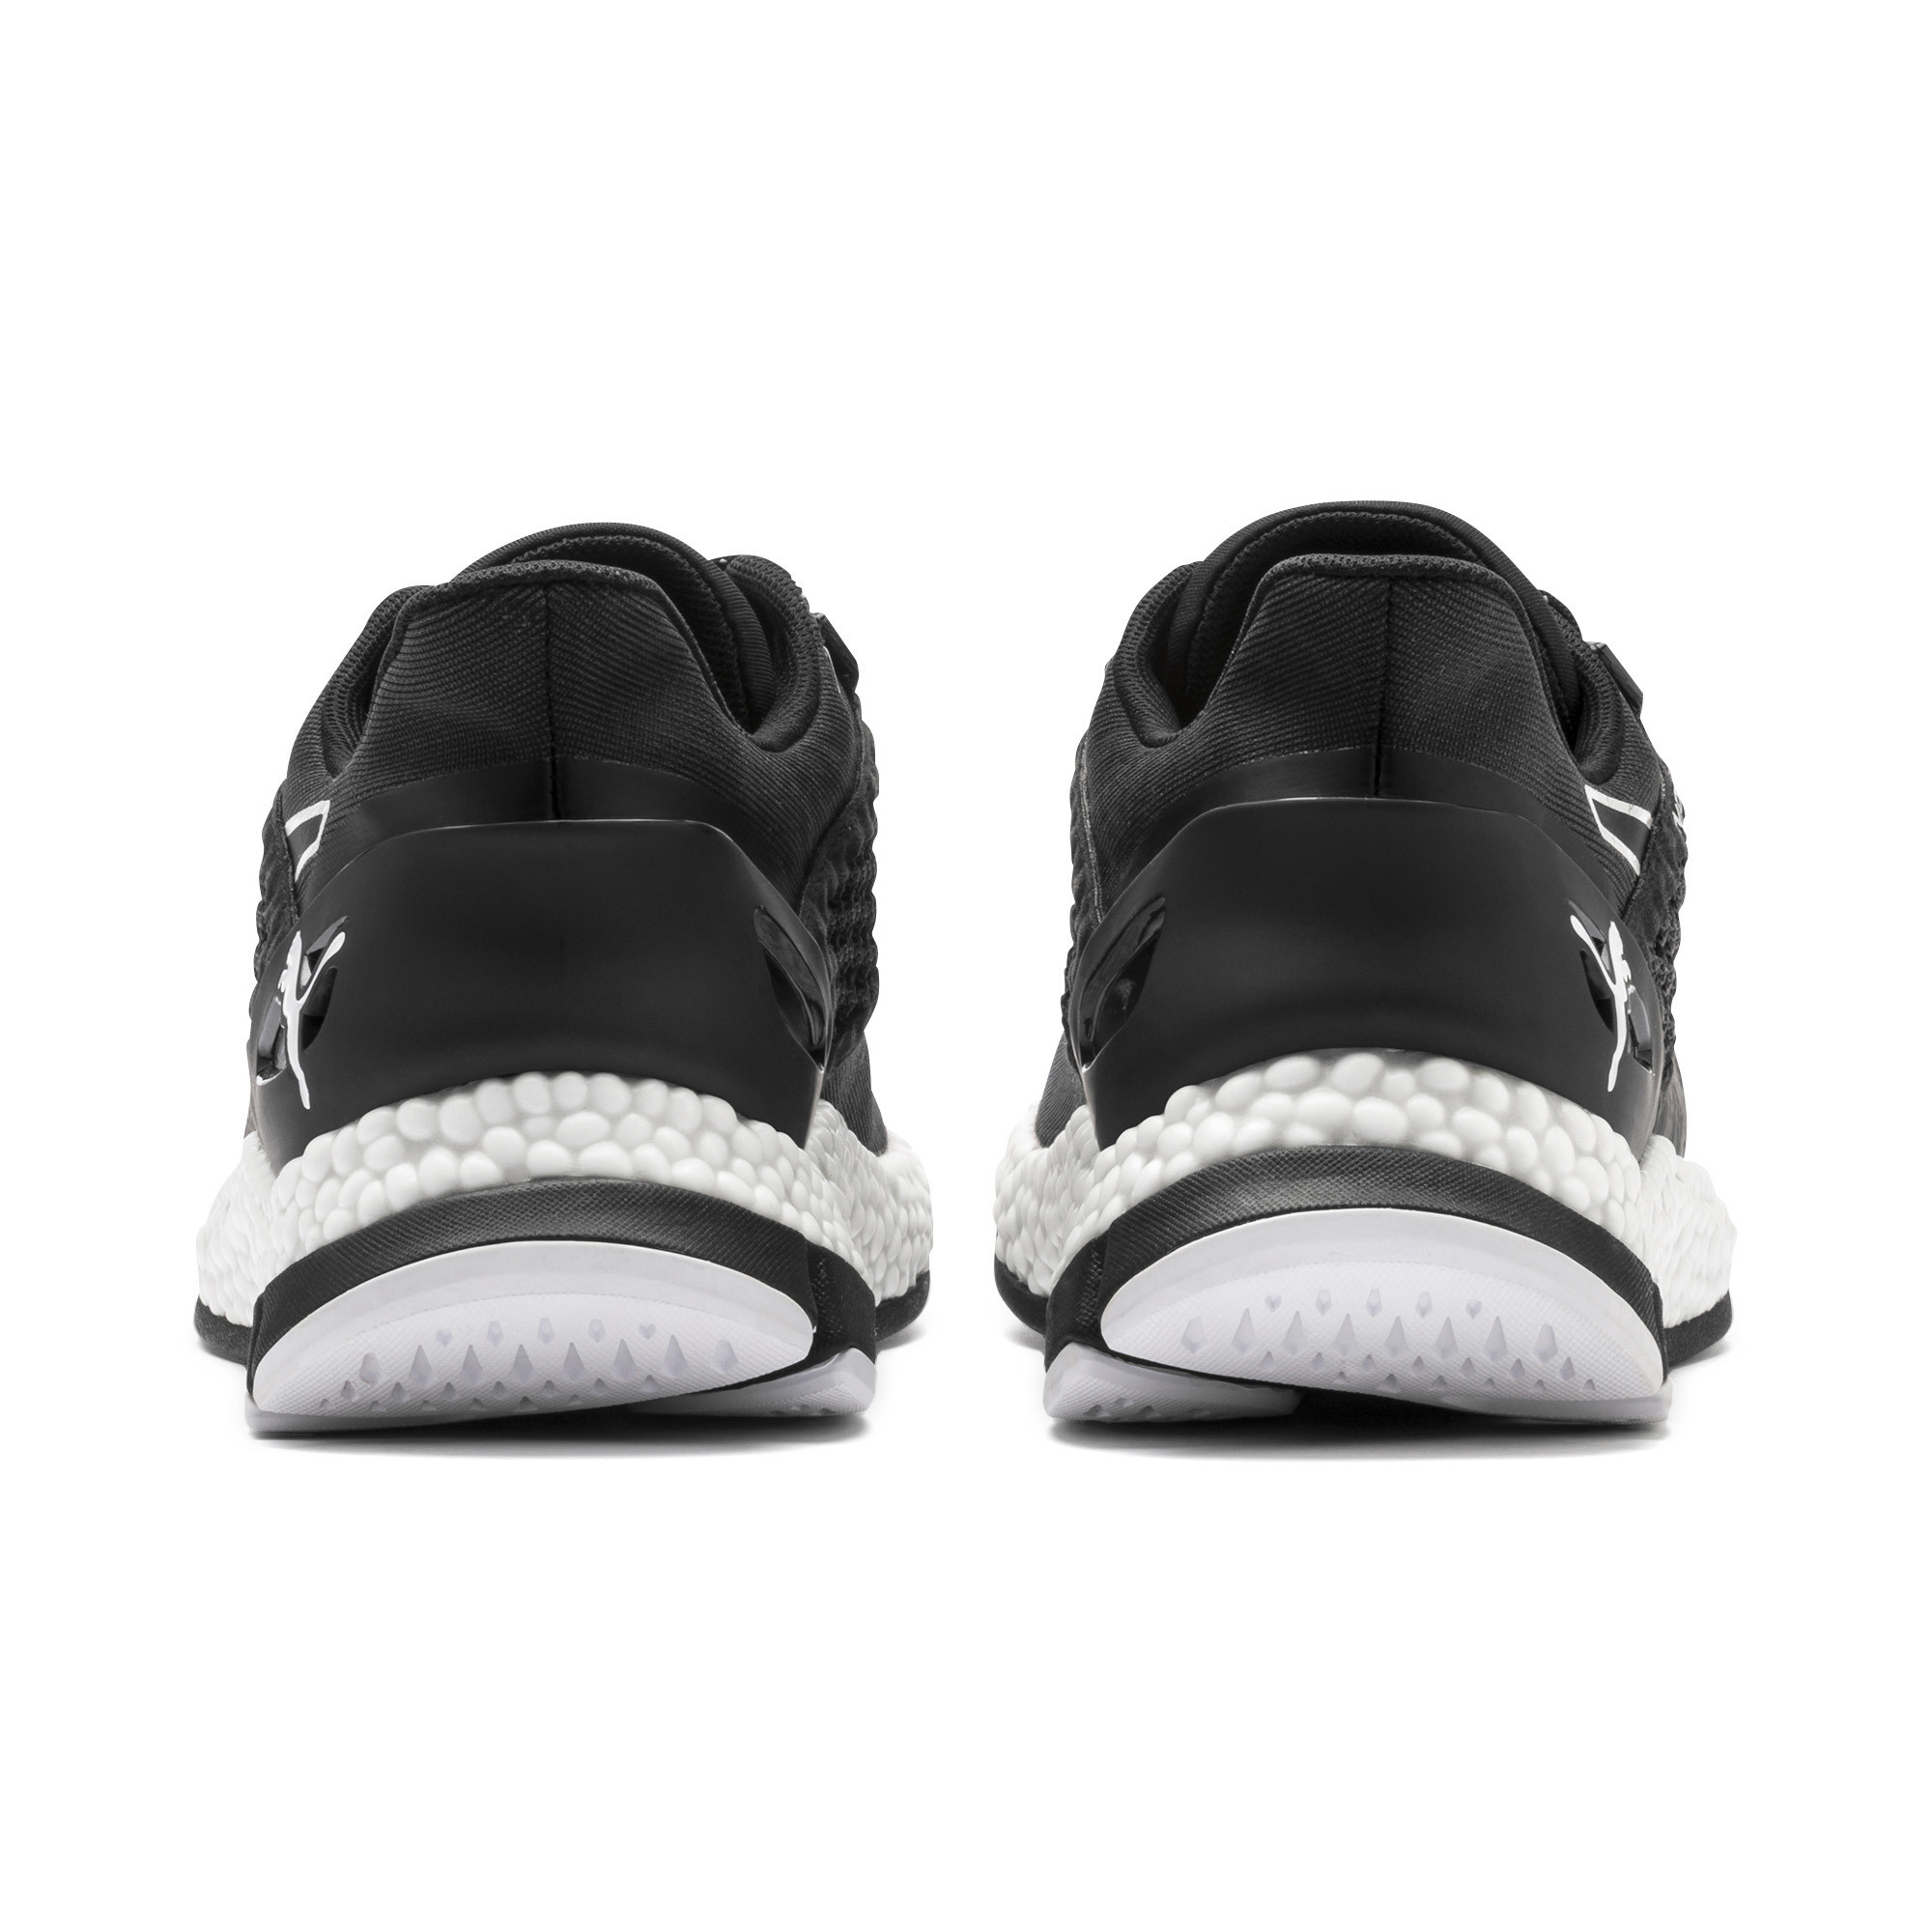 PUMA-Men-039-s-HYBRID-Astro-Running-Shoes thumbnail 11